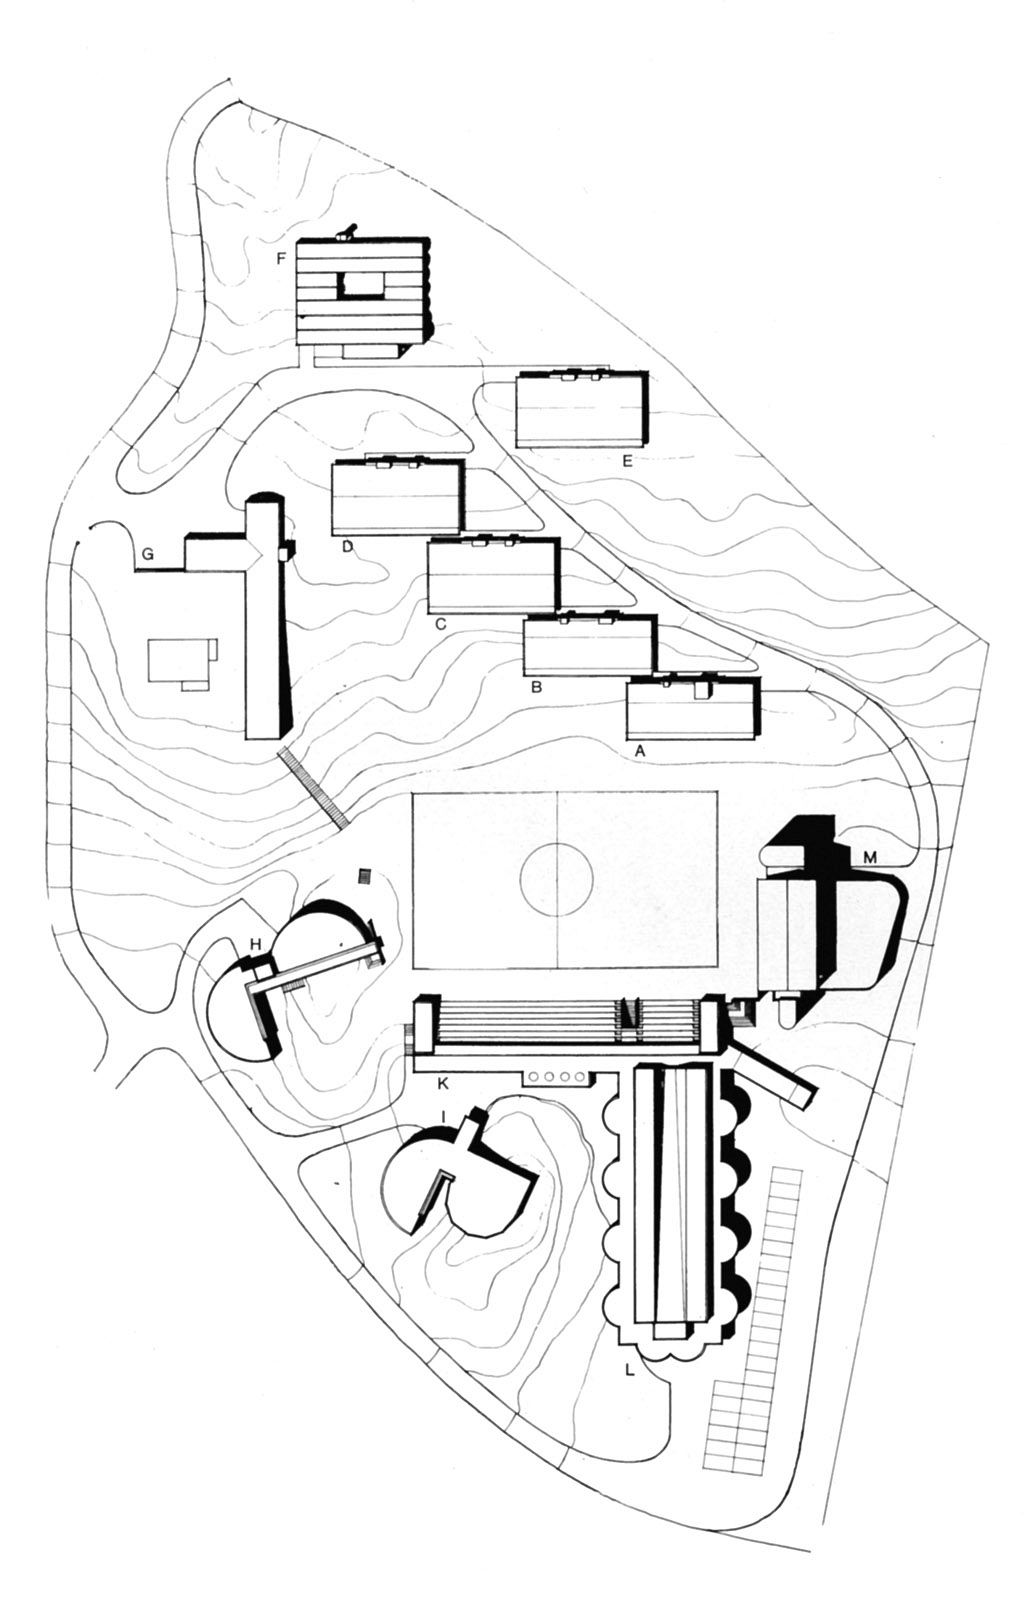 Location plan, Skådalen school, 1975. A., B., C., D., E.Children's dormitories, F.Dormitory, youth 16-18, G.Administration, H.Observation wing, I.Pre-school, K.Main entrance, L.Activities wing, M.Swimming pool.